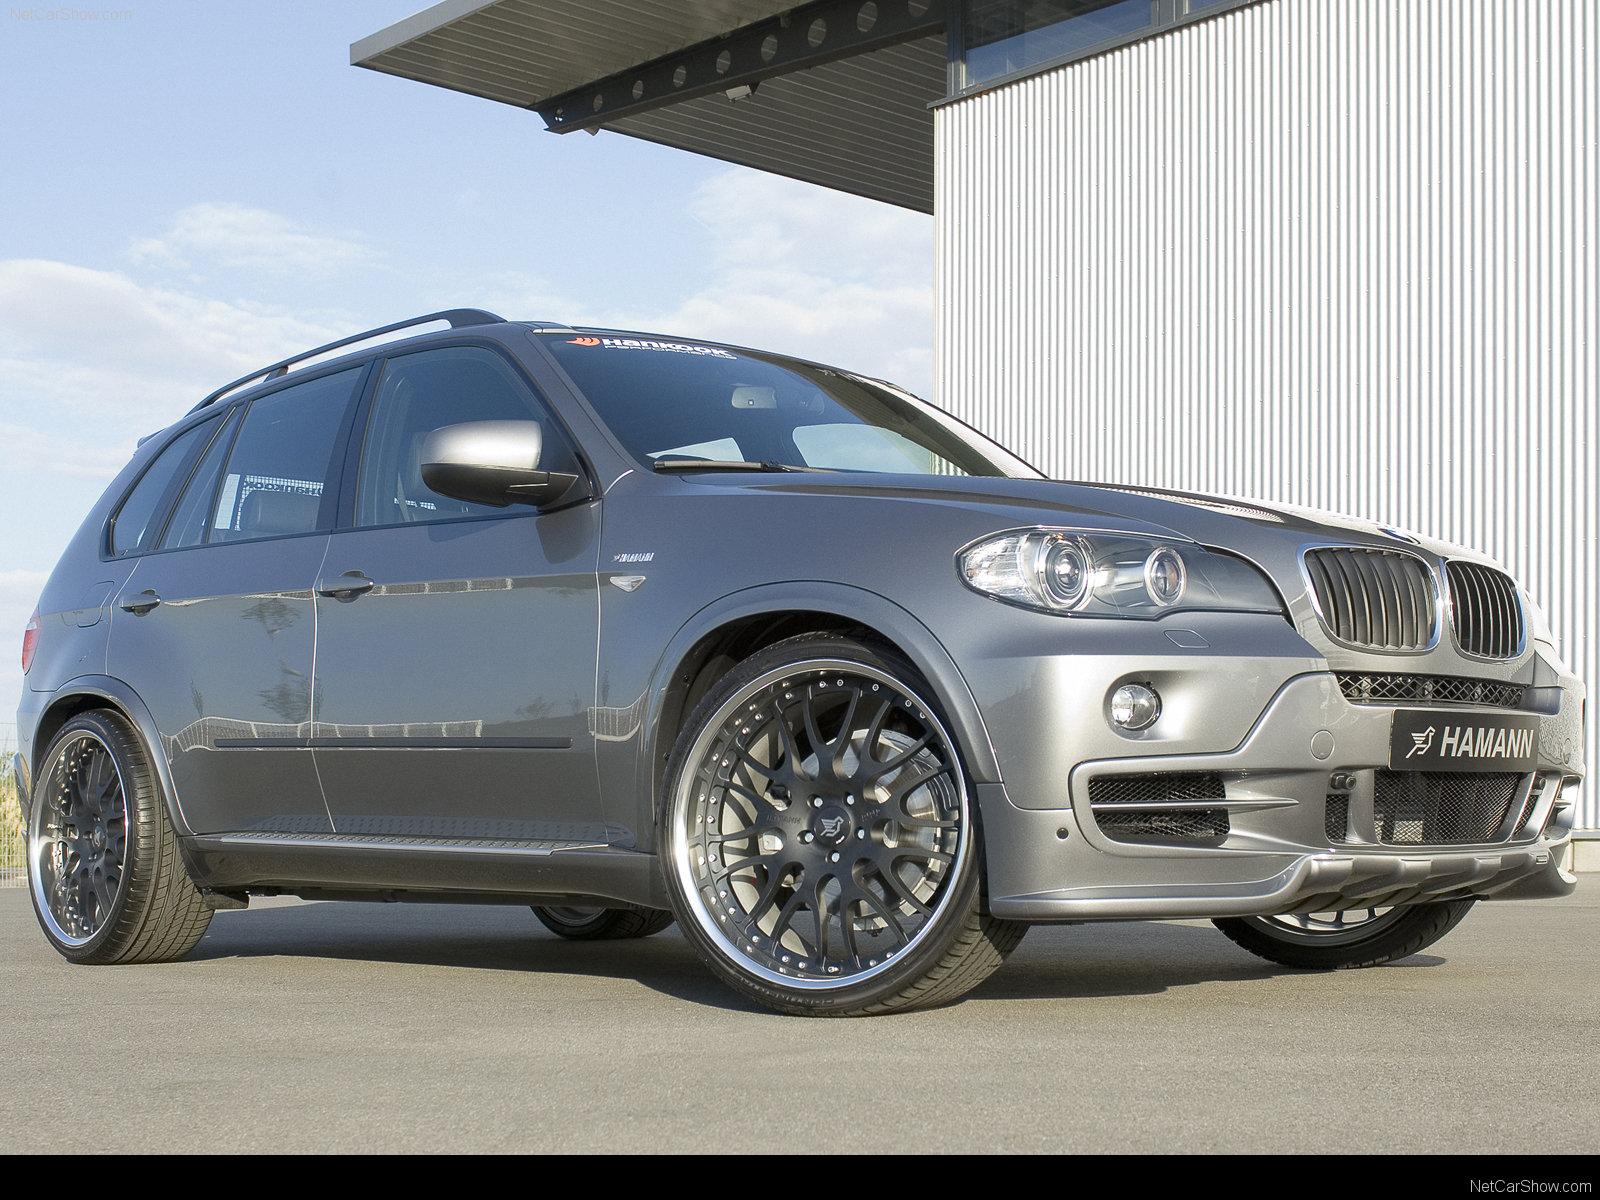 hamann bmw x5 e70 picture 44385 hamann photo gallery. Black Bedroom Furniture Sets. Home Design Ideas